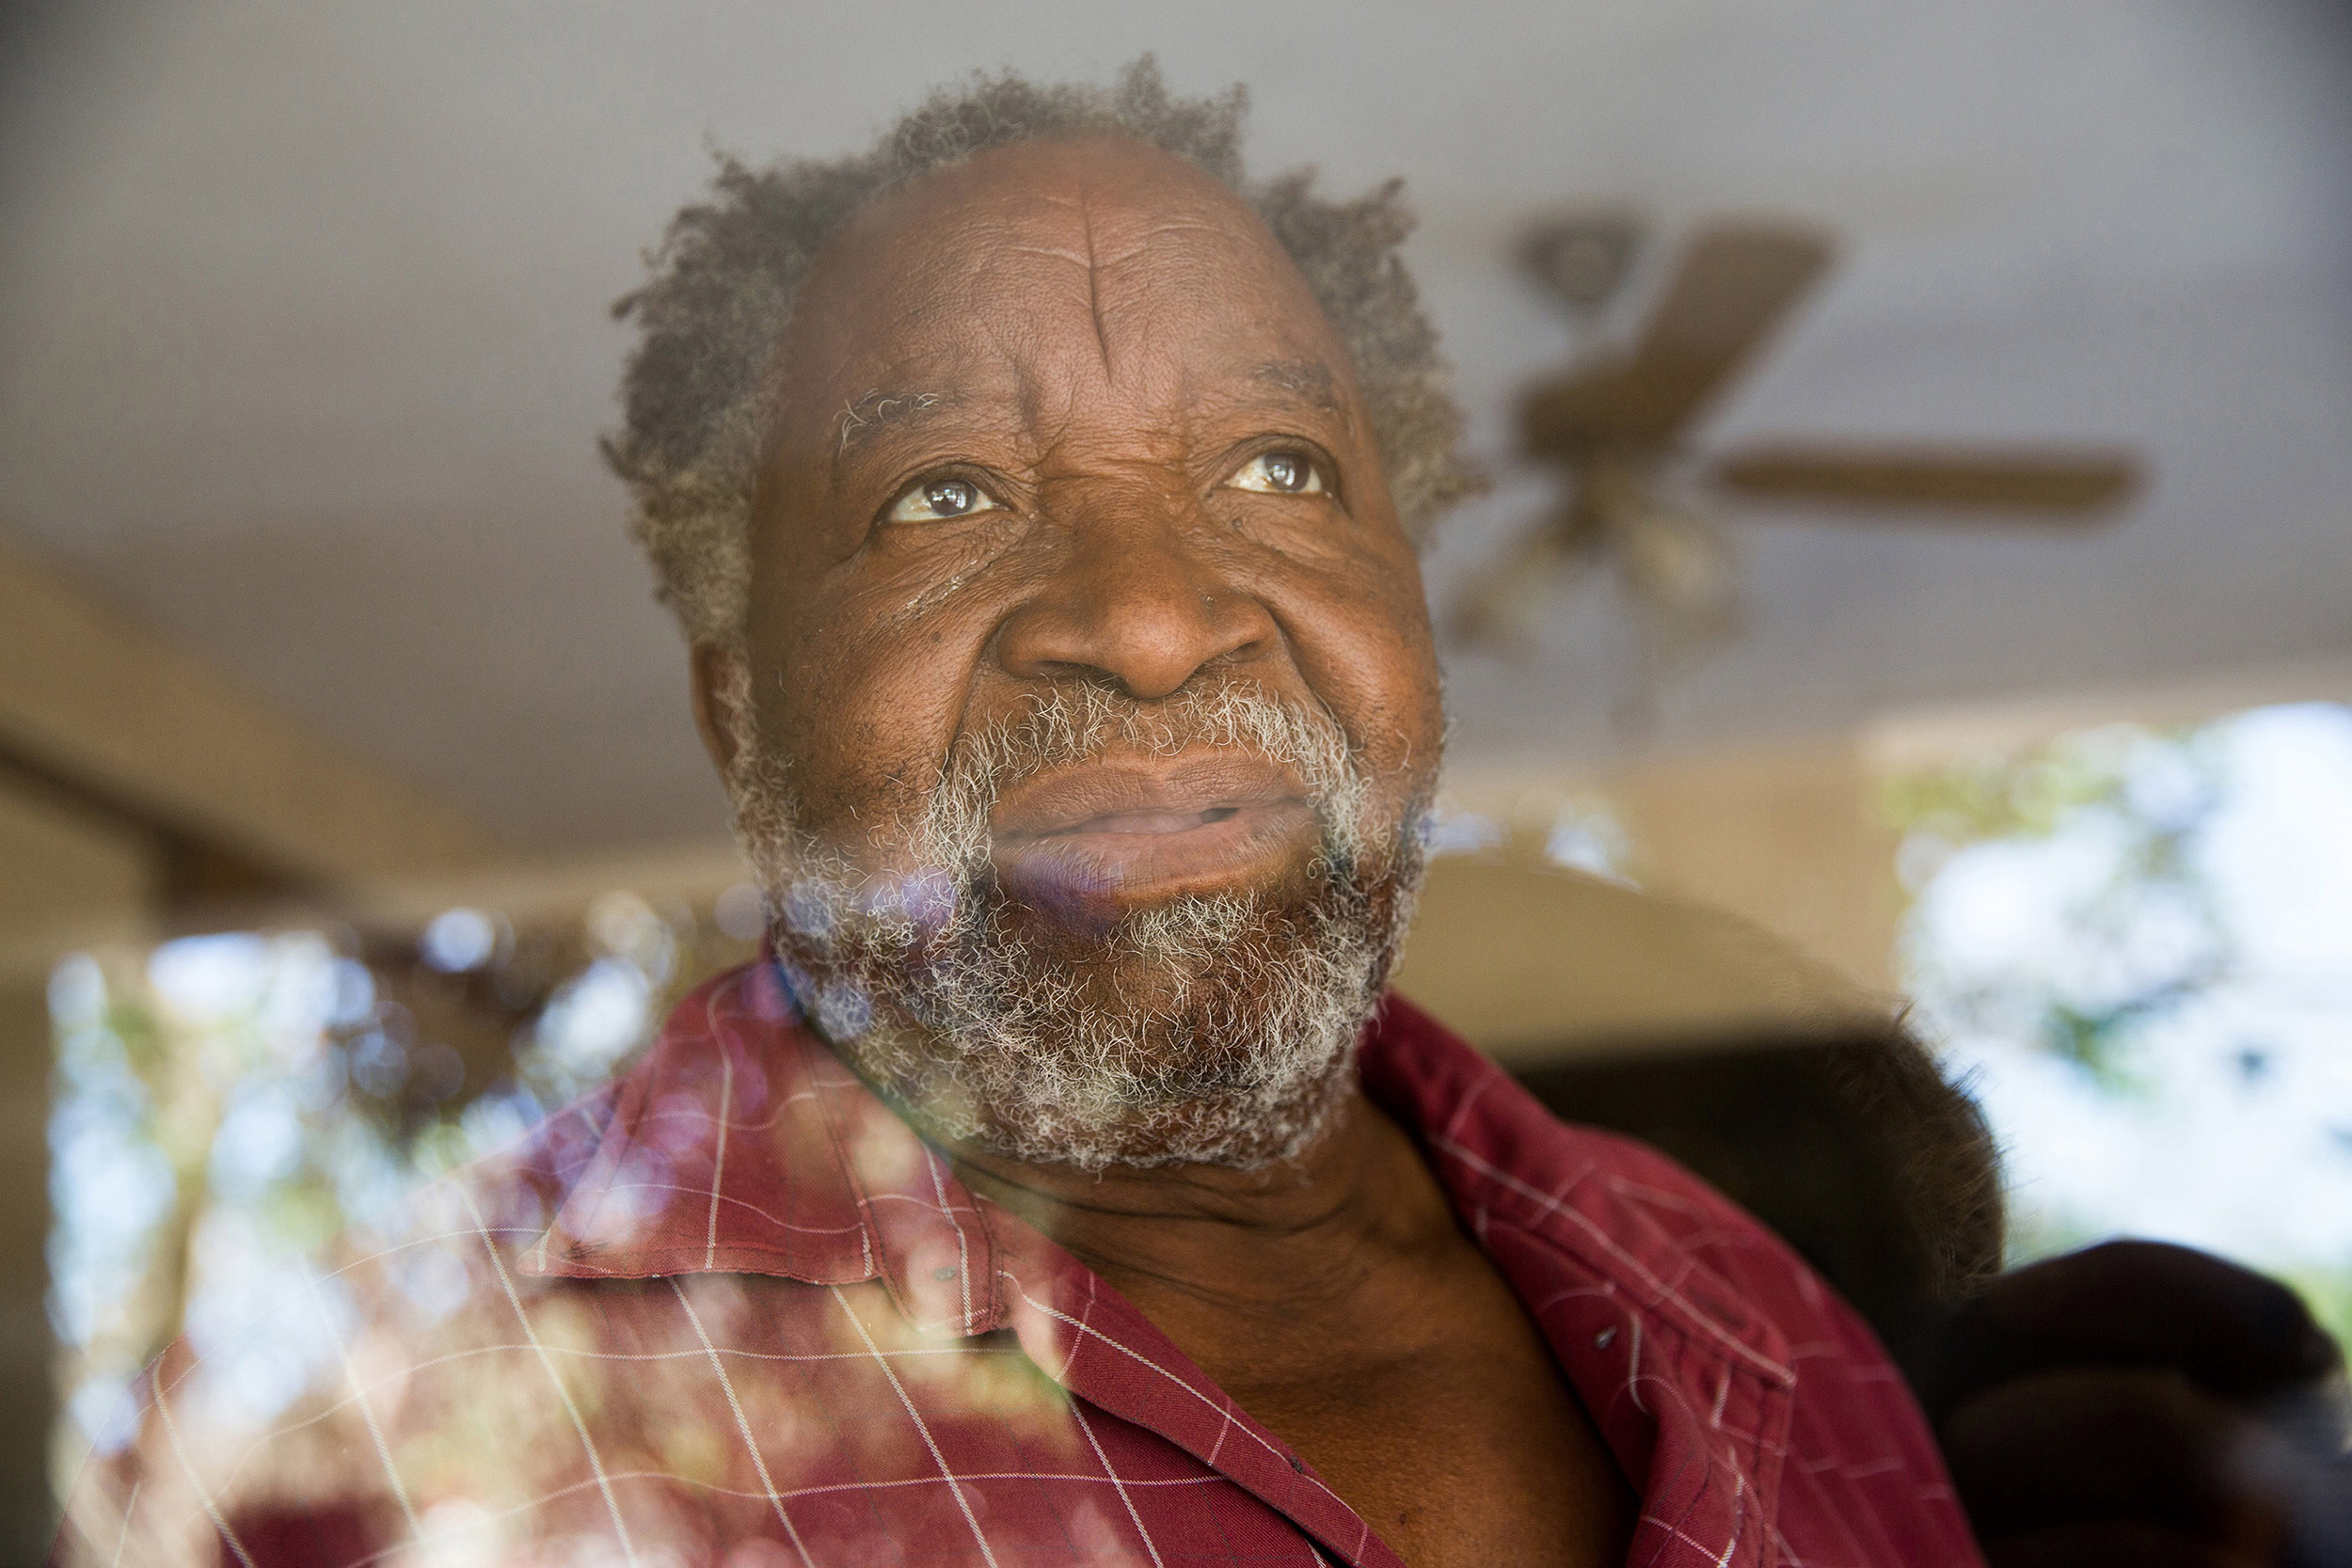 25 November 2018: Khotiza Ngubane looks through the window of his home at the lemon tree Clare Stewart planted shortly before her death.